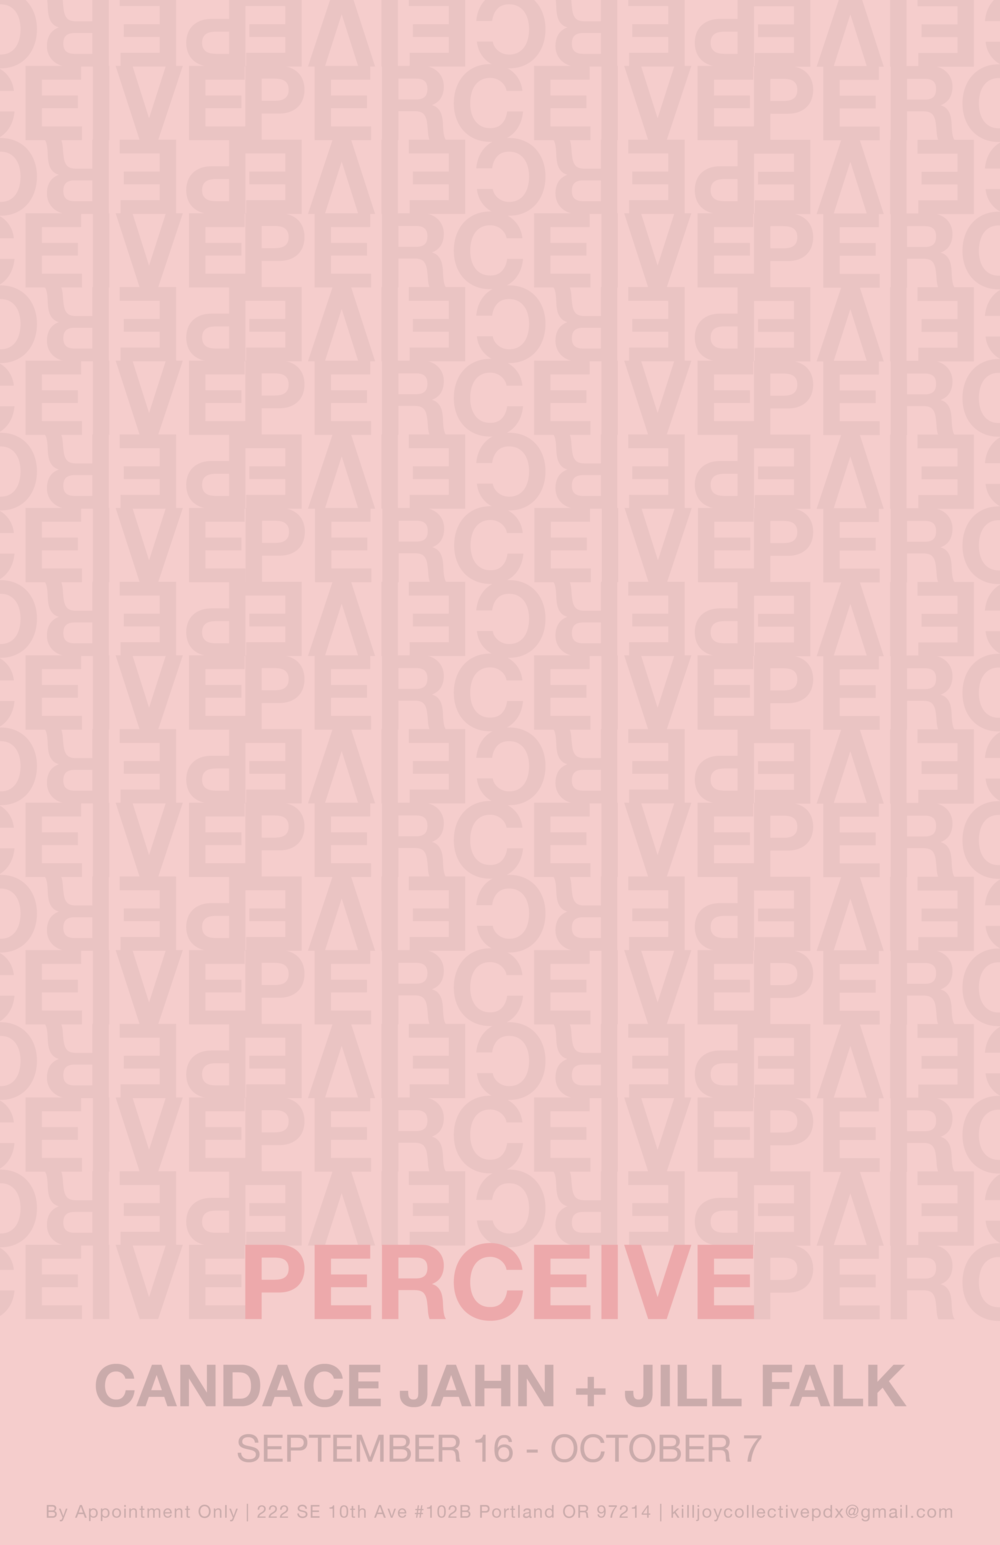 Perceive_02_C-01.png